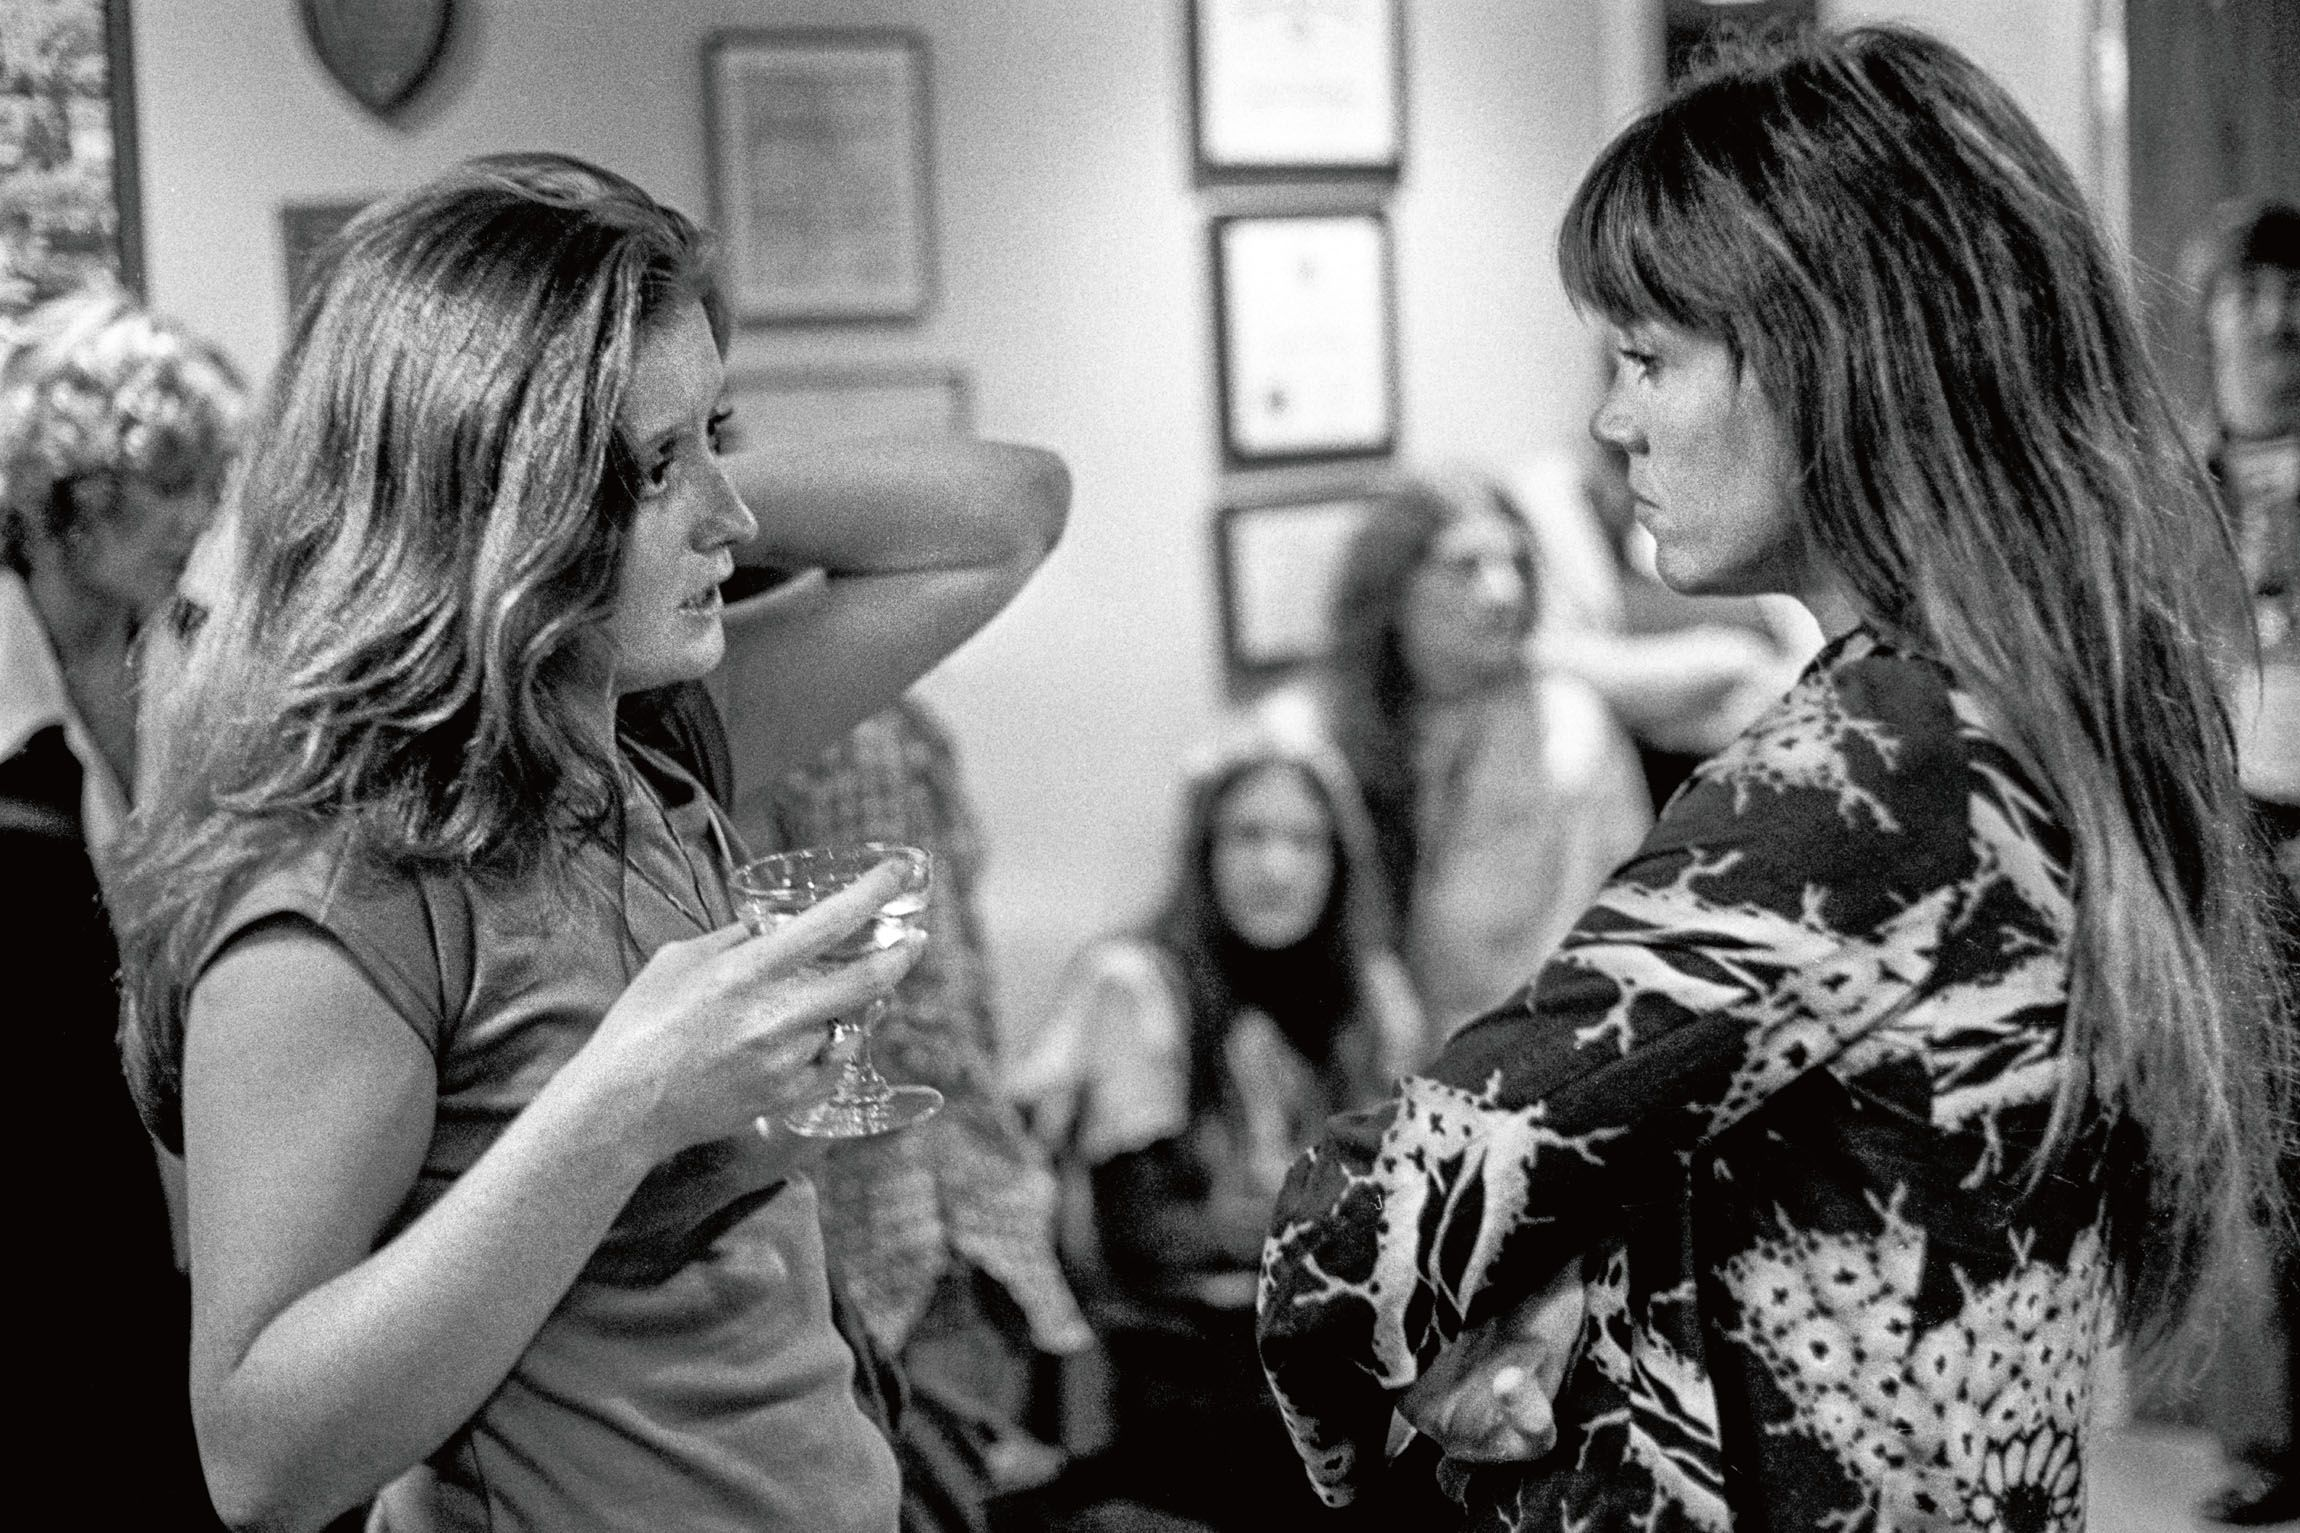 Bonnie Raitt speaks with Jane Fonda after her performance at a campaign fundraiser in 1976.